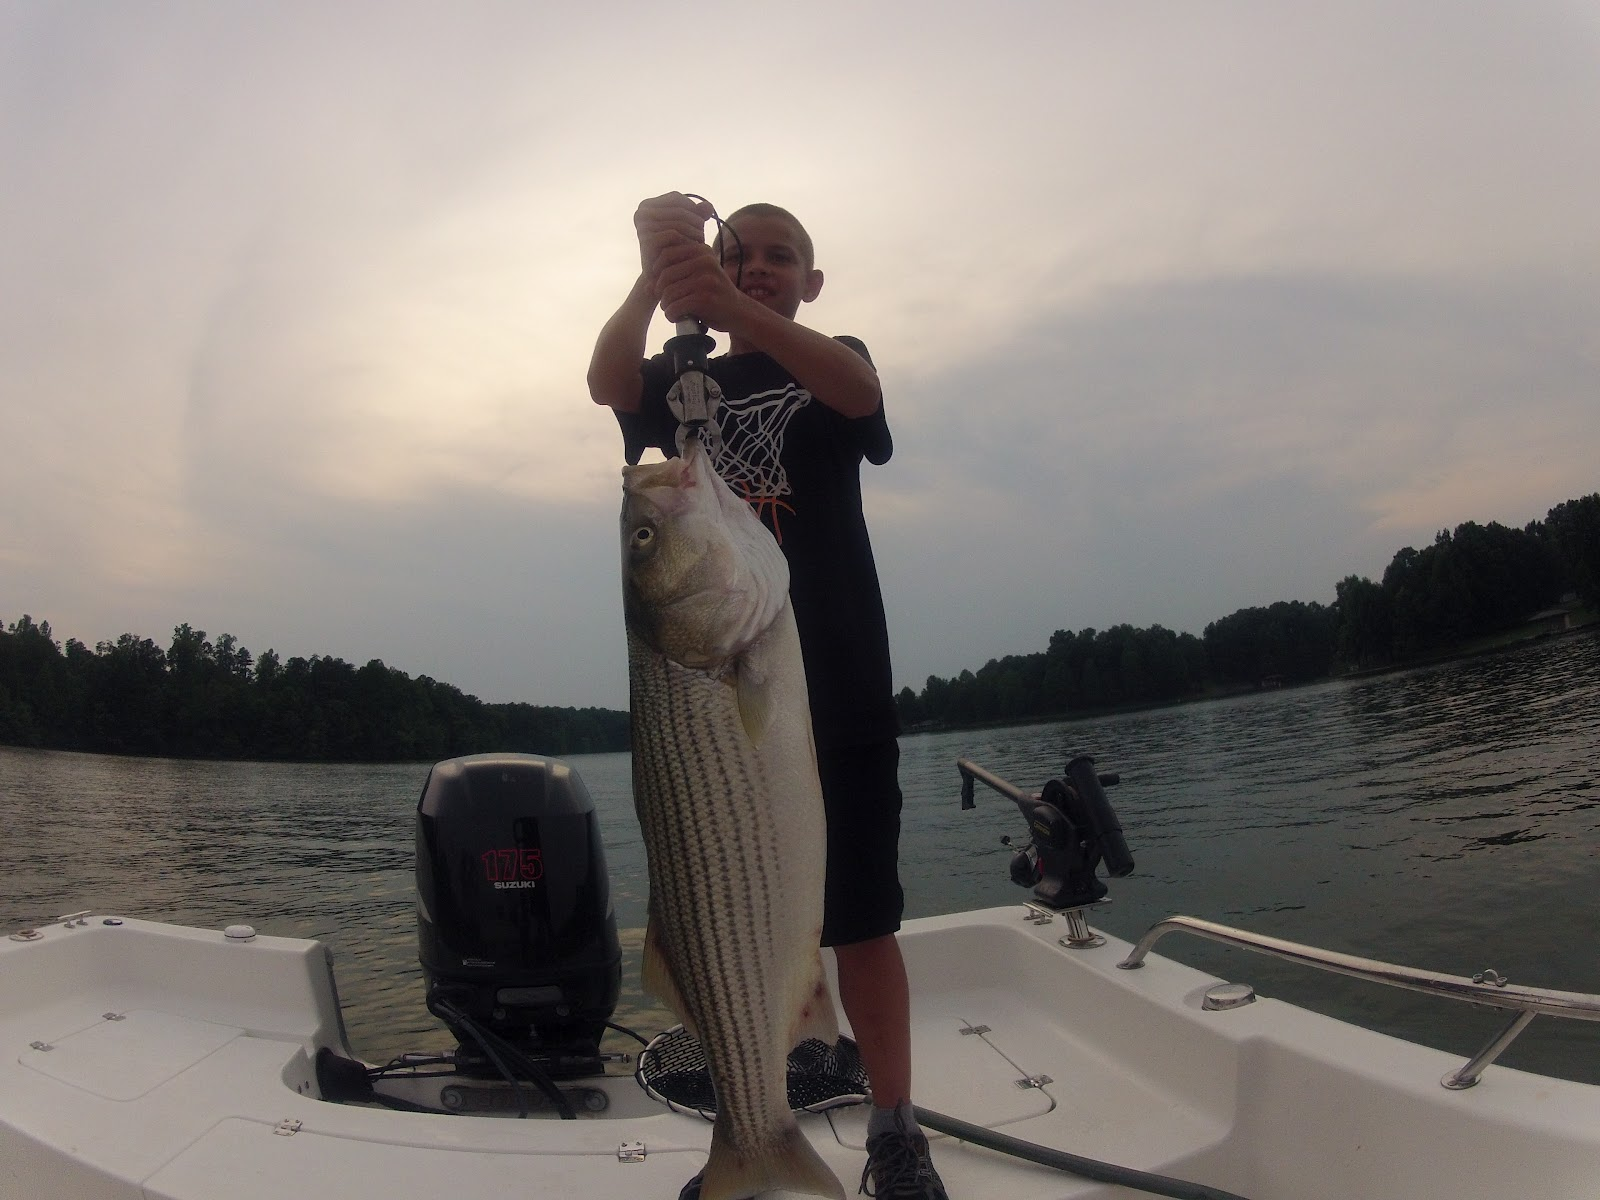 central virginia outdoors lake anna striper fishing